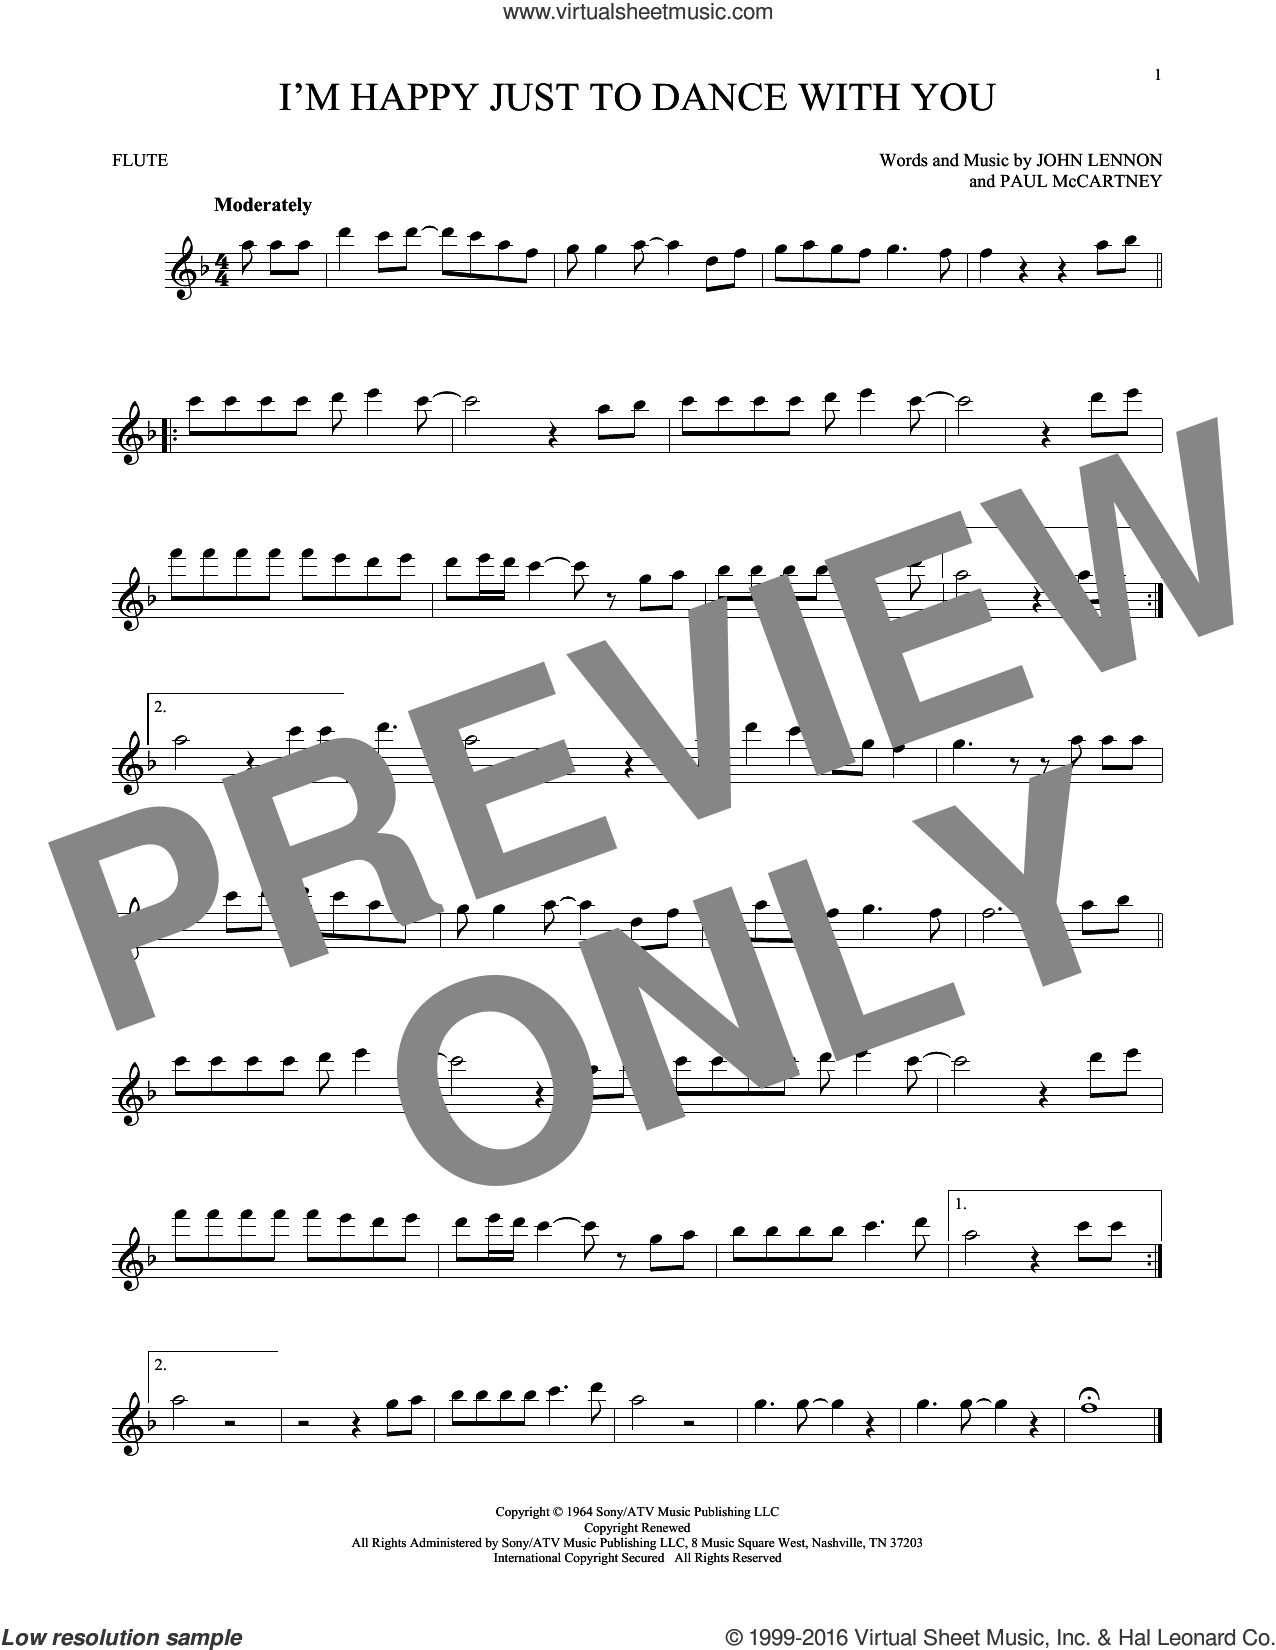 I'm Happy Just To Dance With You sheet music for flute solo by Paul McCartney, The Beatles and John Lennon. Score Image Preview.